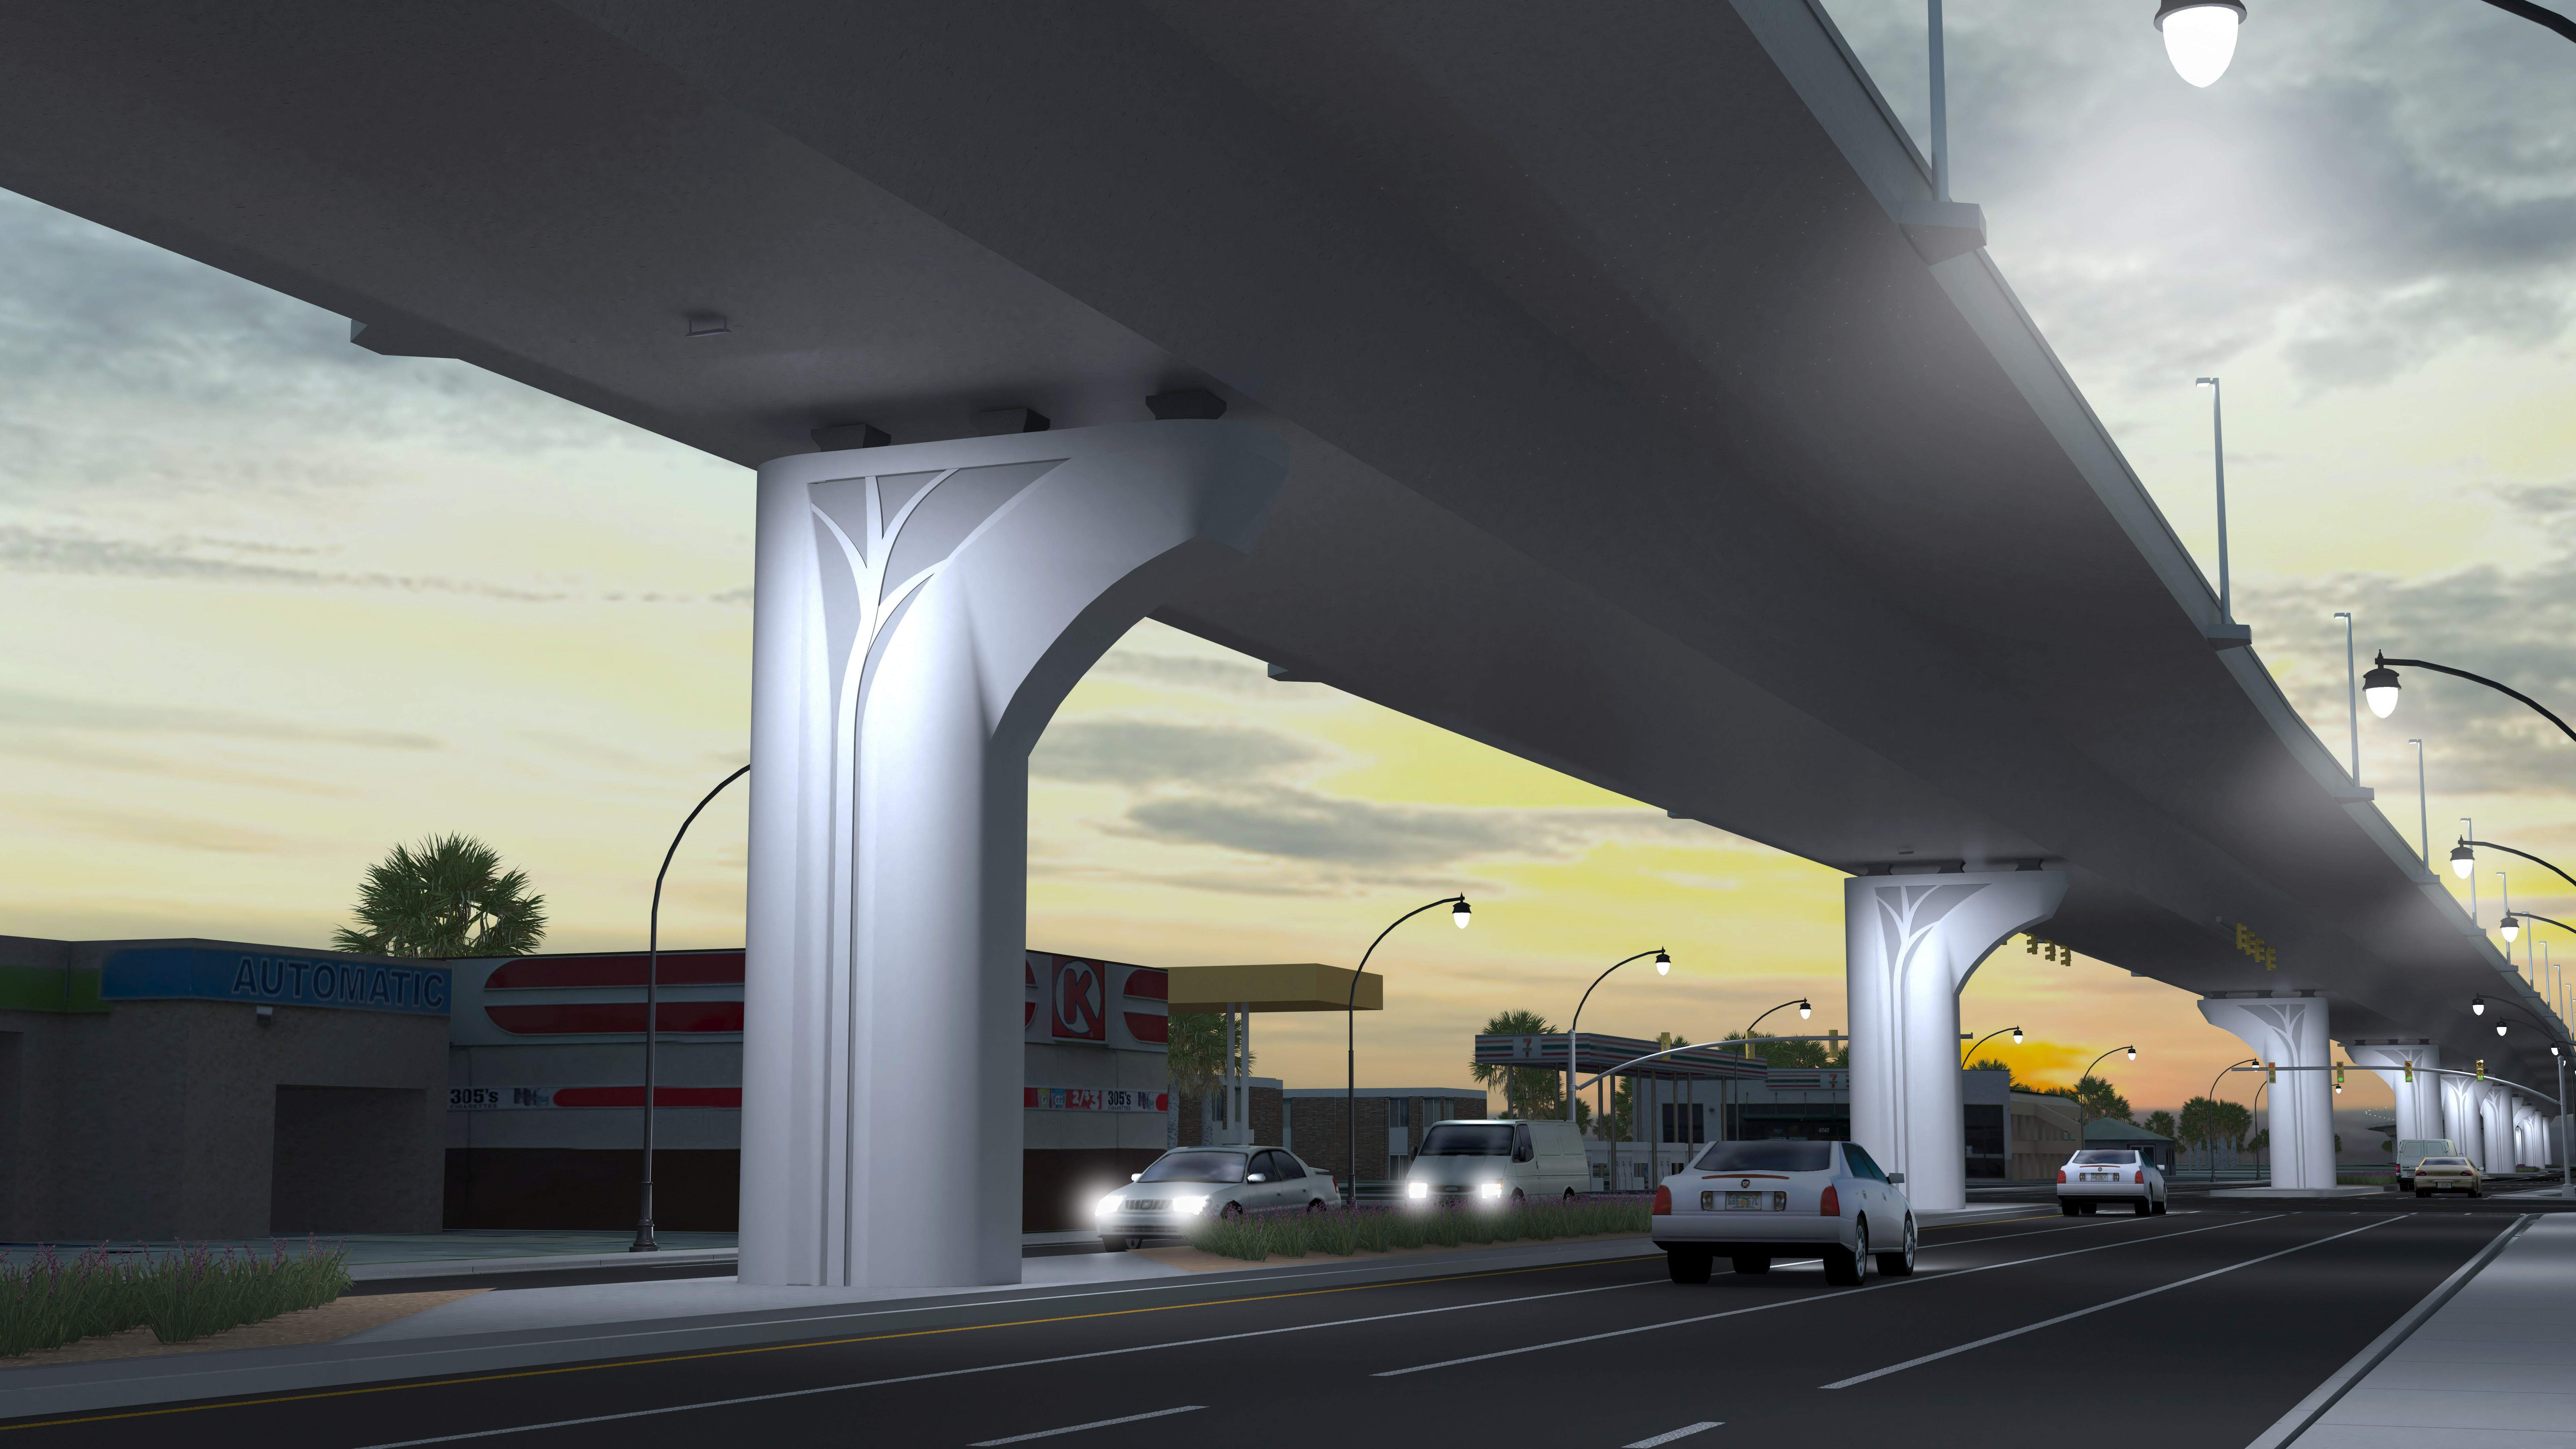 Voters overwhelmingly supported a pier design called Estuary for the $200-million extension of the Lee Roy Selmon Expressway in Tampa. [Courtesy of AECOM]